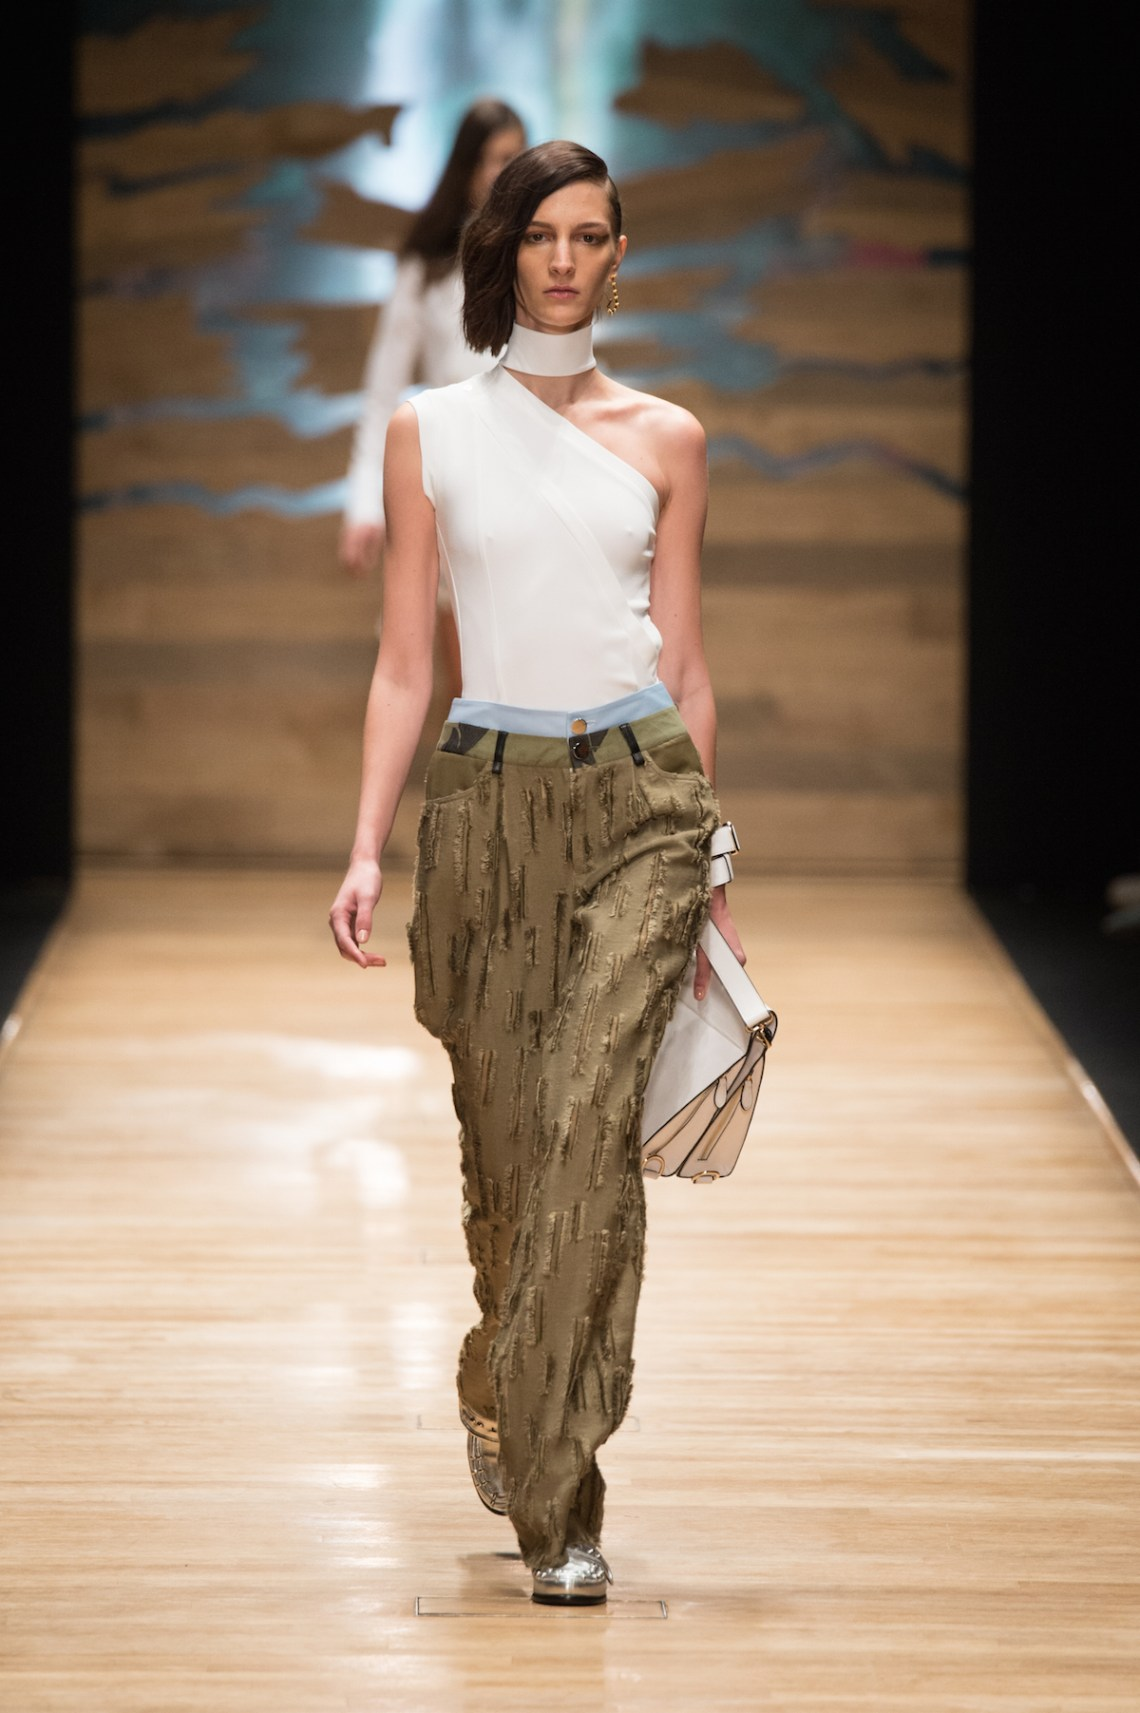 Pixelformula womenswear ready to wear prêt a porter summer 2016 Guy Laroche